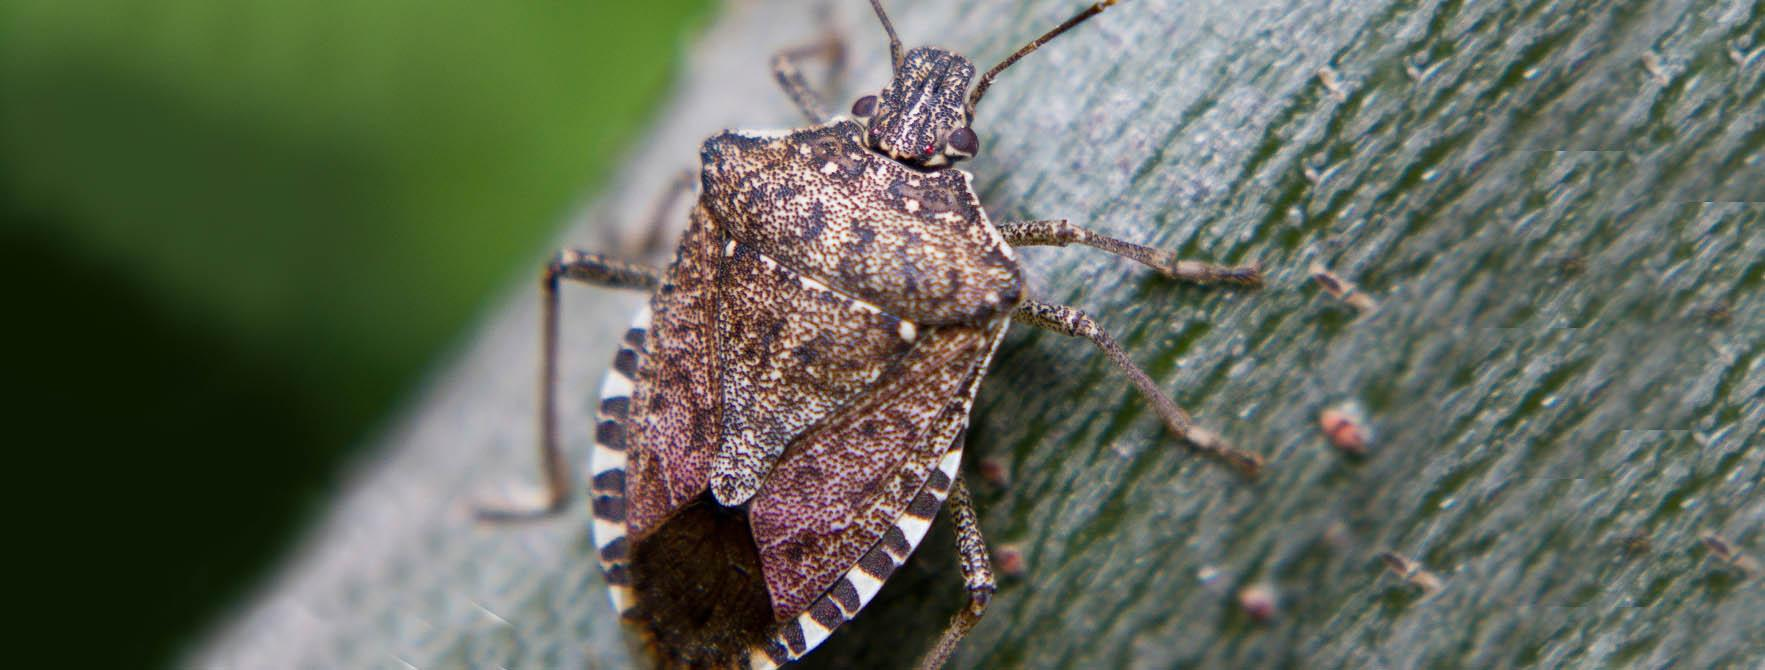 How To Get Rid Of Stink Bigs Organic Natural Bug Control